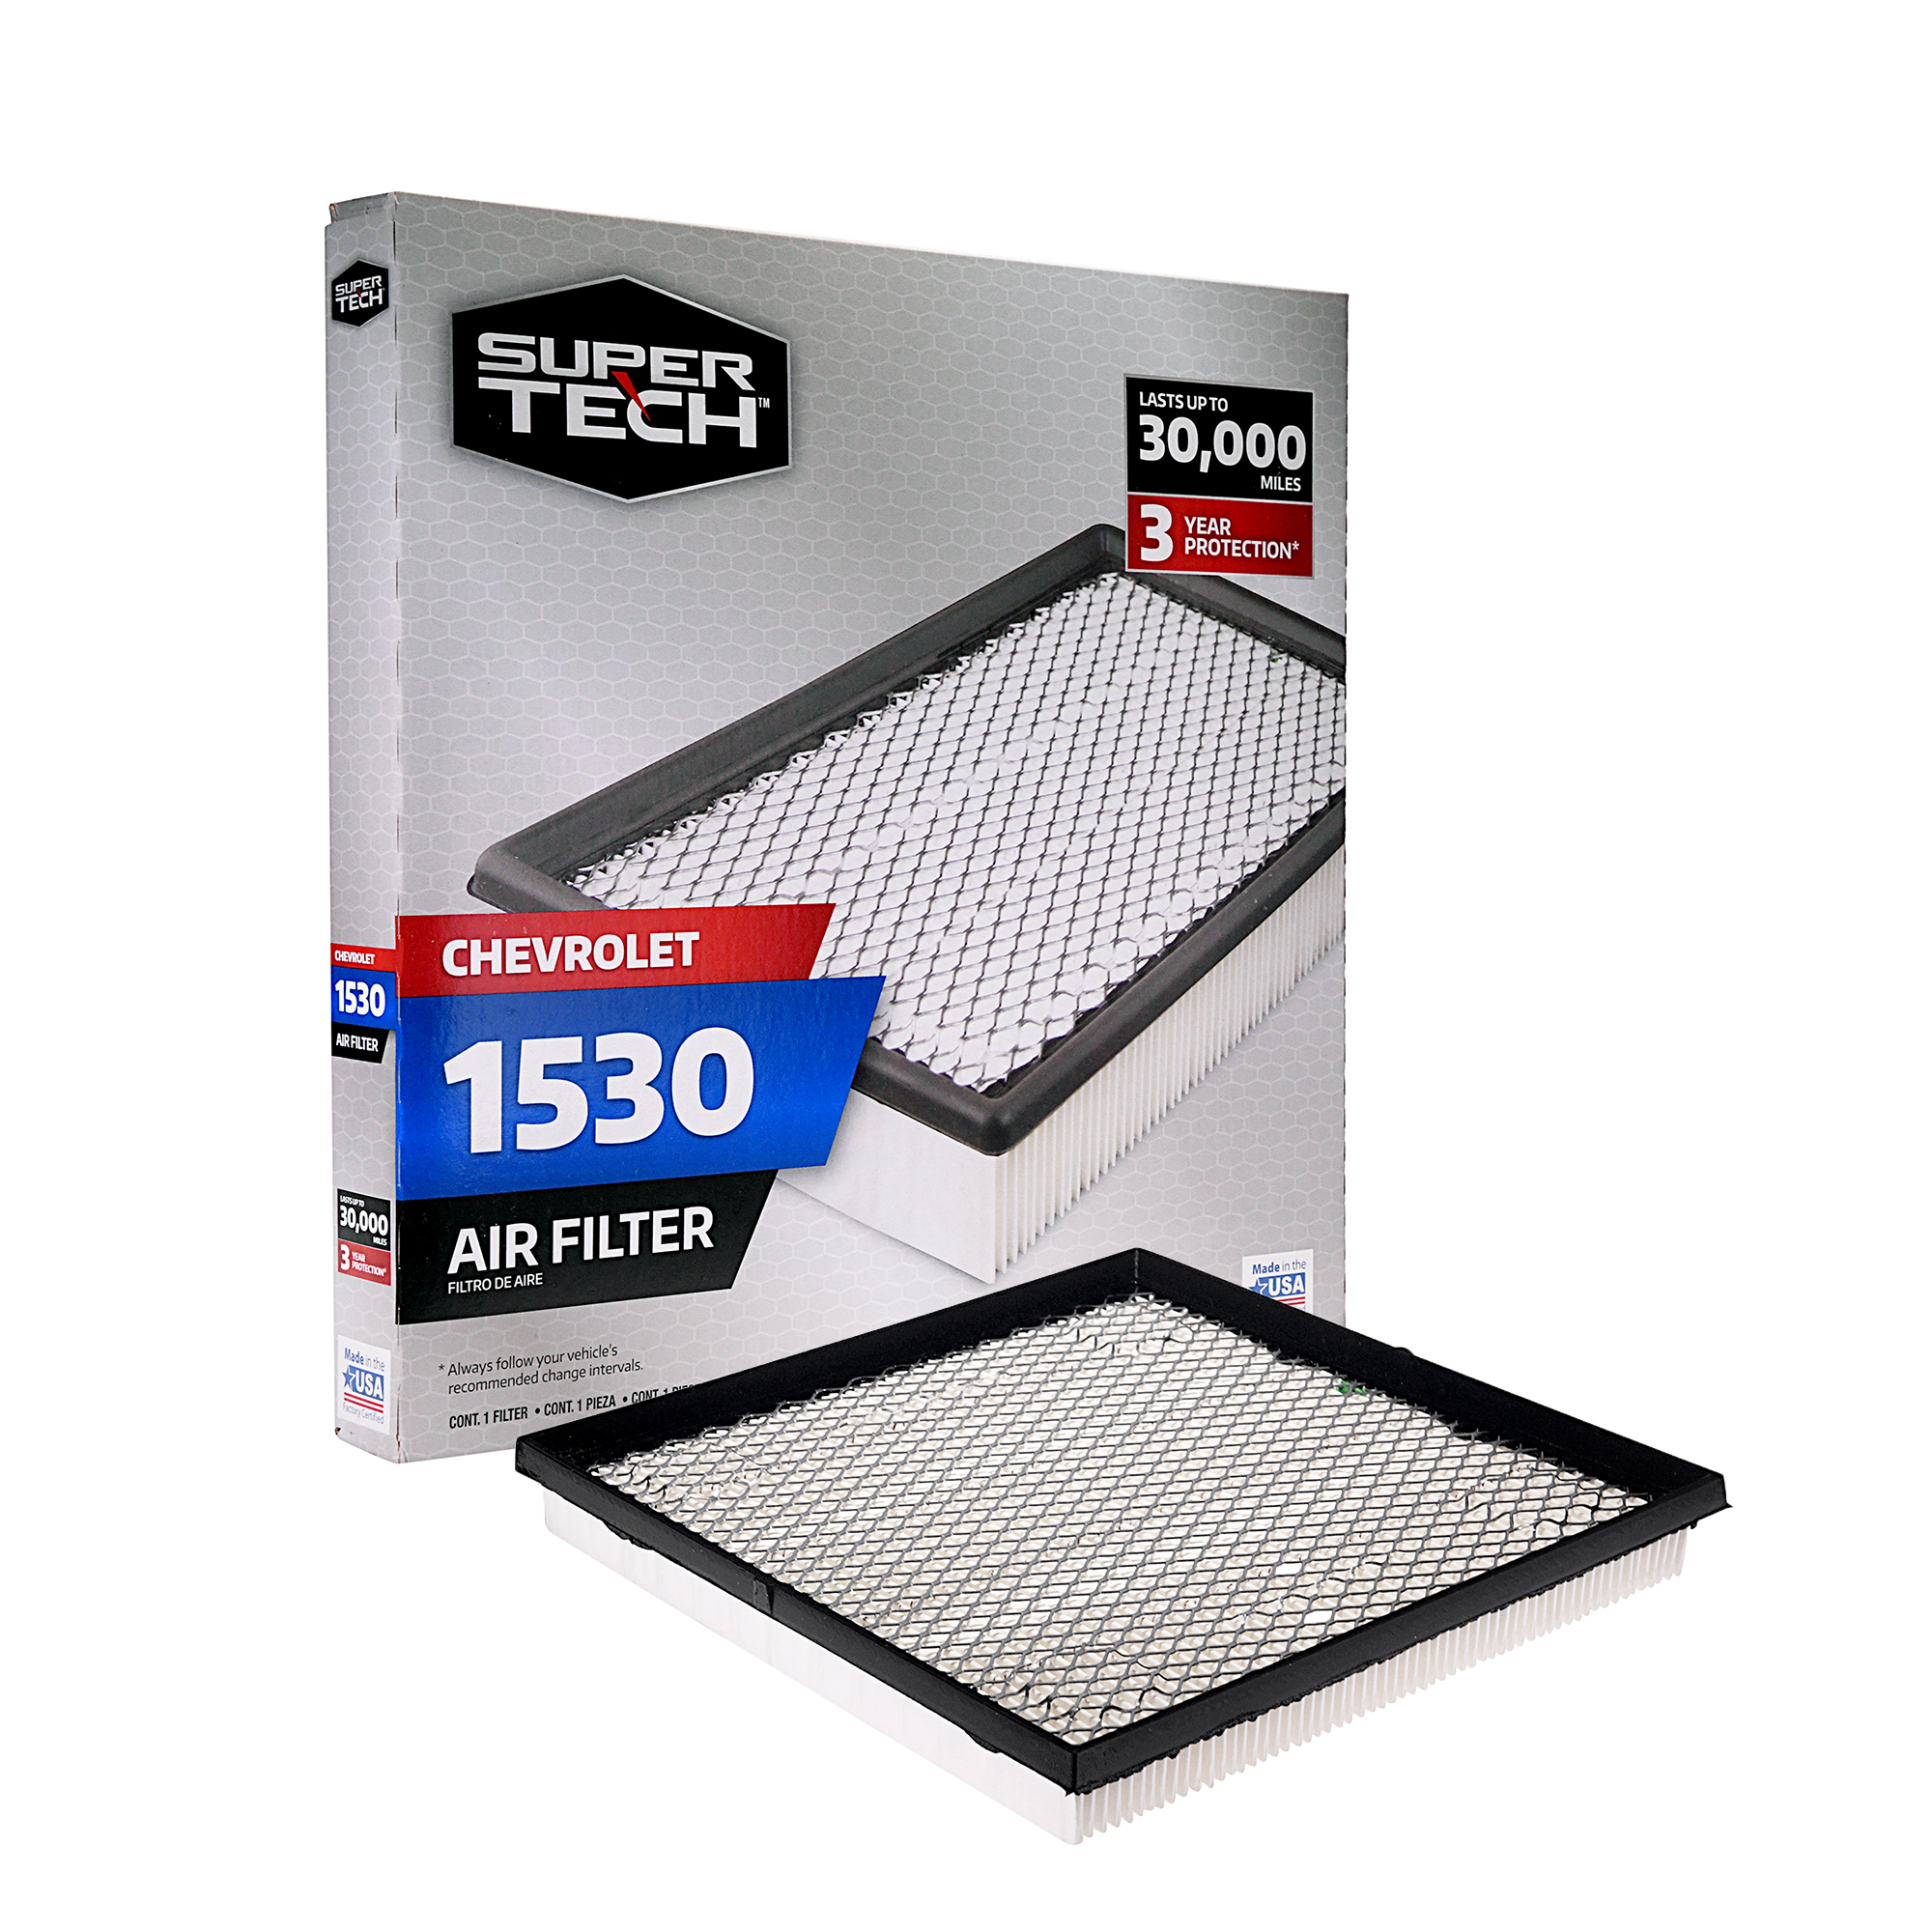 SuperTech 1530 Engine Air Filter, Replacement Filter for GM or Chevrolet